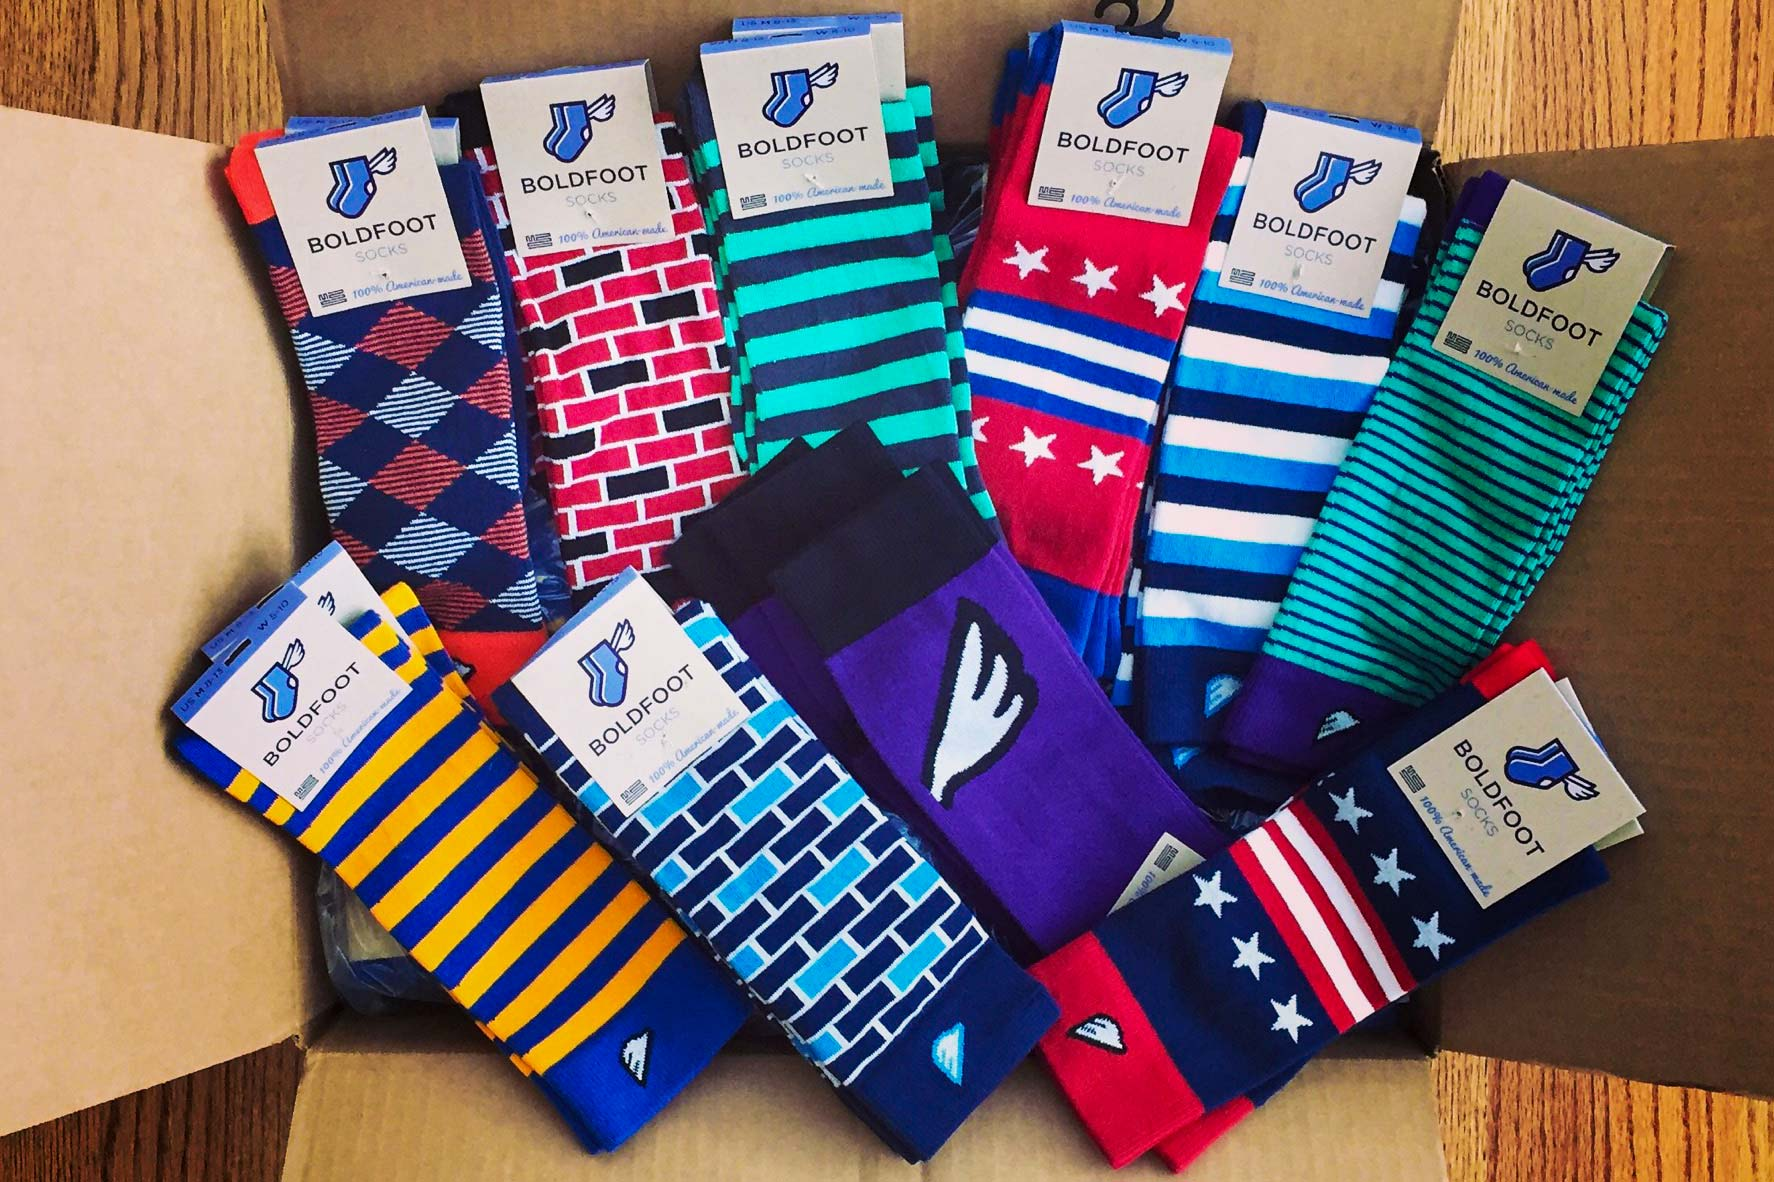 Christmann designs the socks himself, focusing on bright, colorful patterns that will stand out. (Photo courtesy of Brad Christmann)